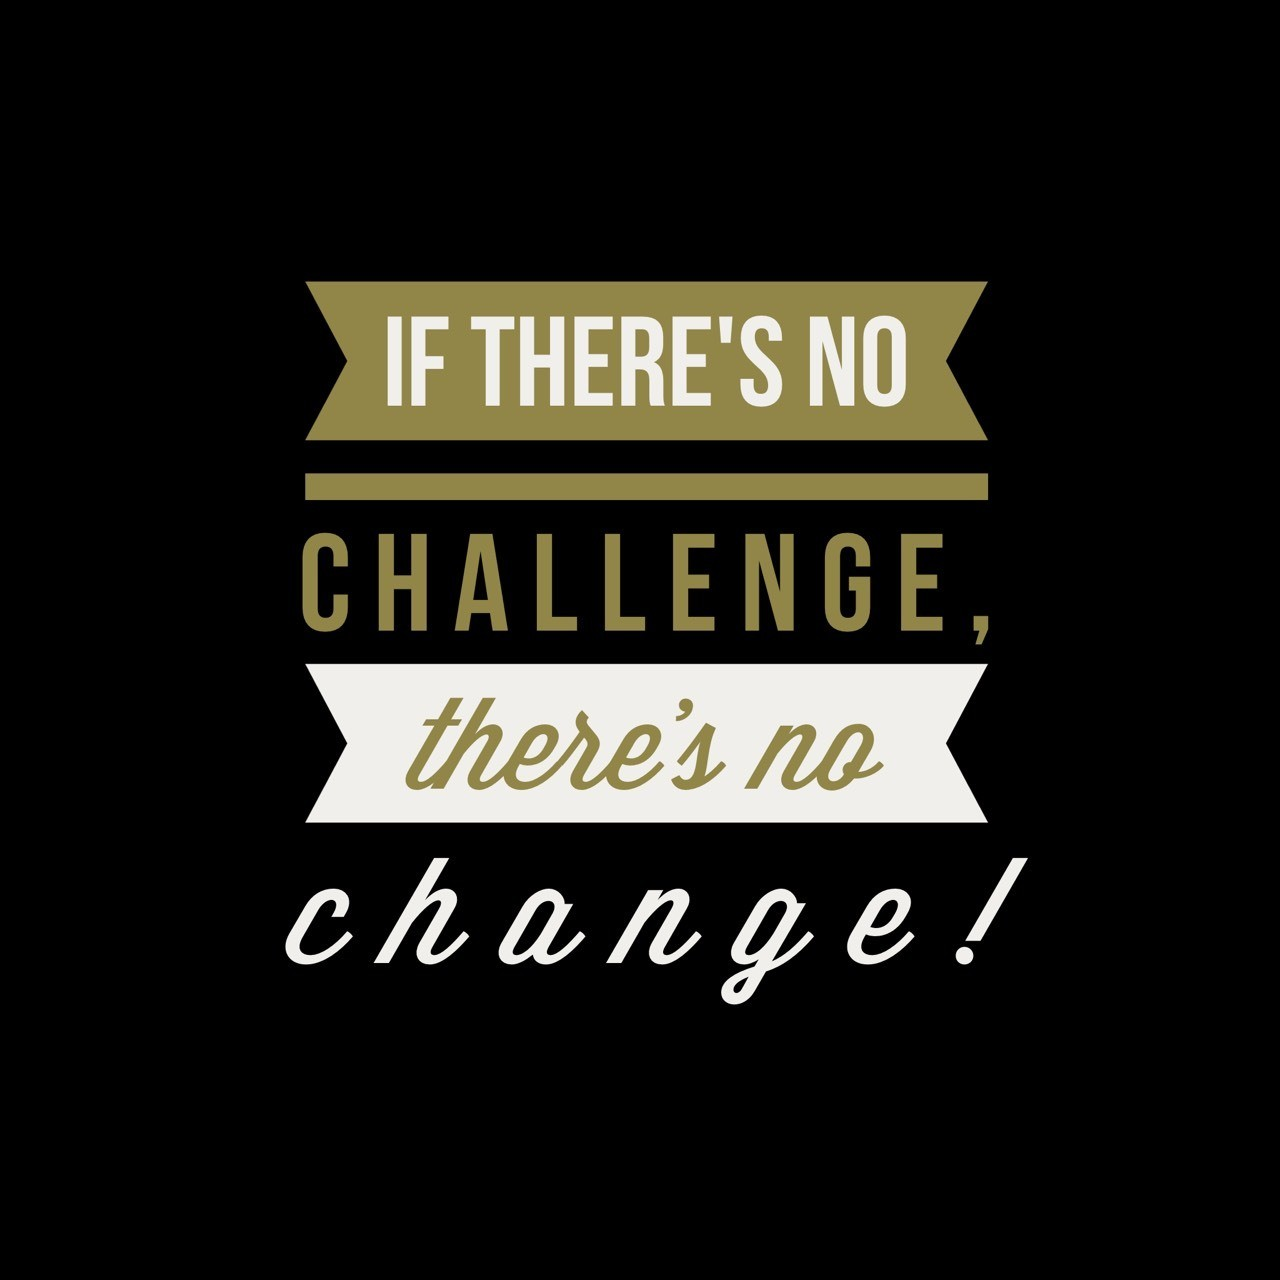 ....make changes for a better life ahead! Check us out. www.myffu.com/Ehriqa. #buildyourempire #investinyourself #changeyourlife #wealthbuilding